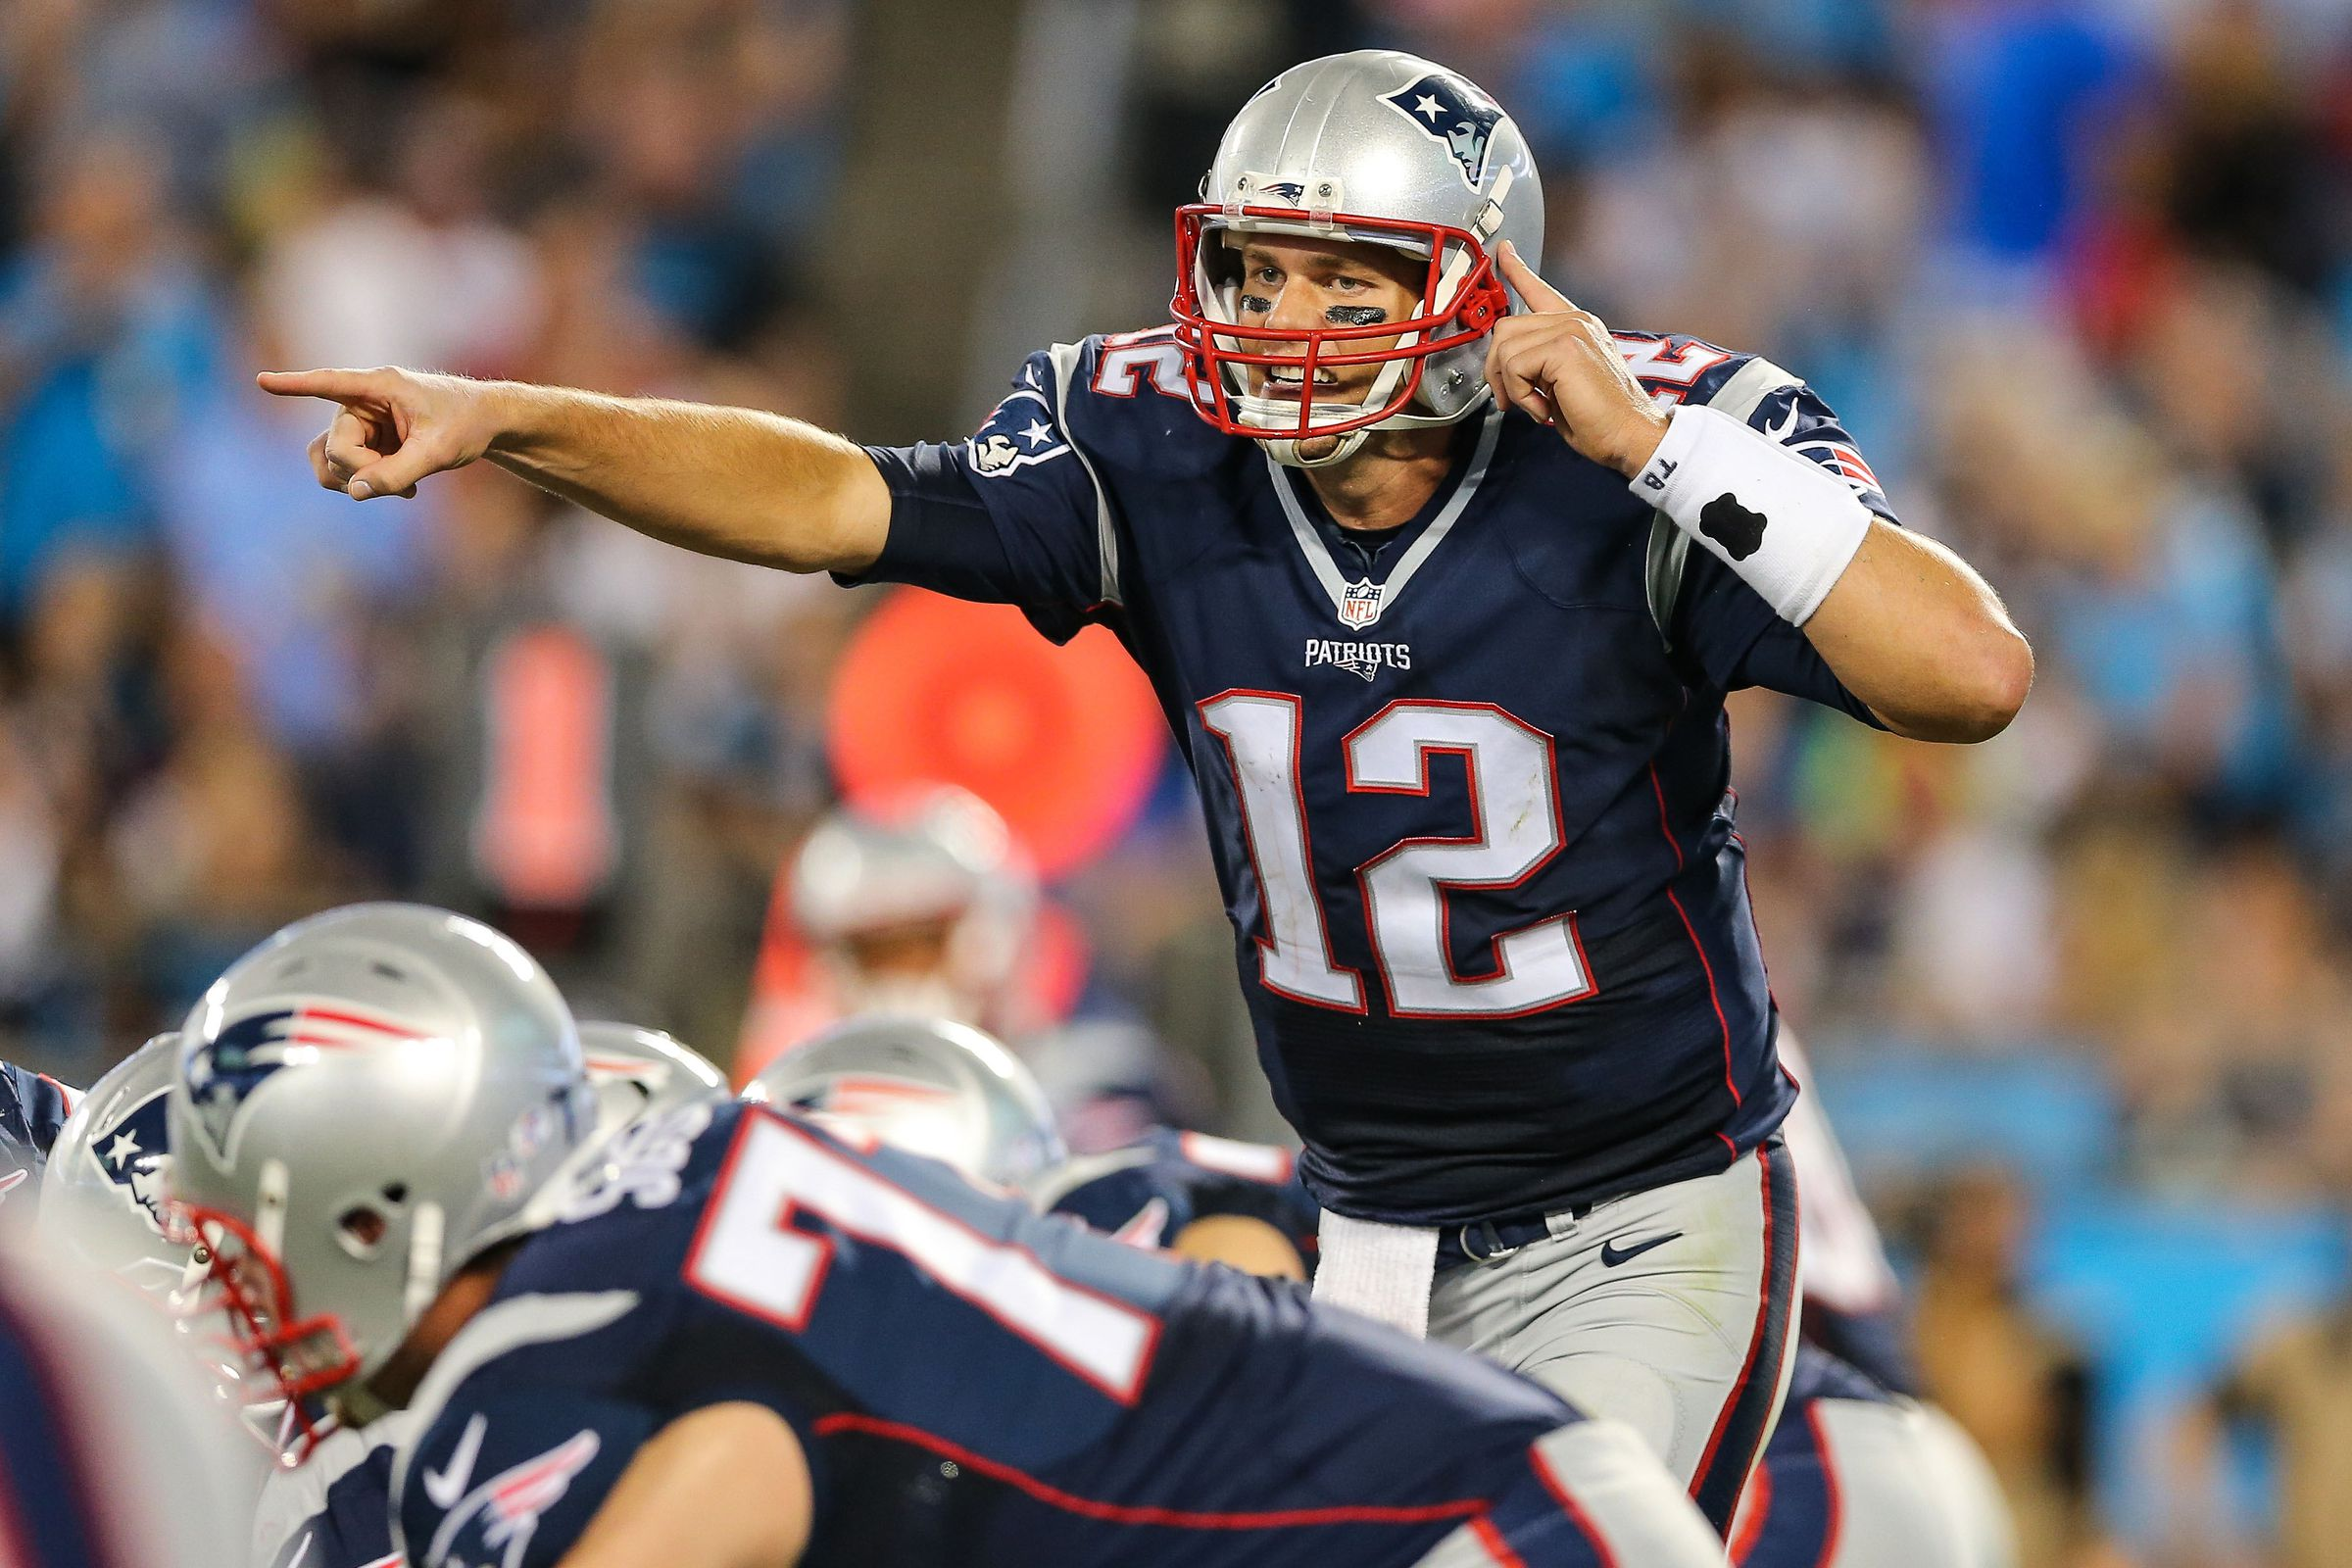 nfl betting lines usa today nfl football schedule for today